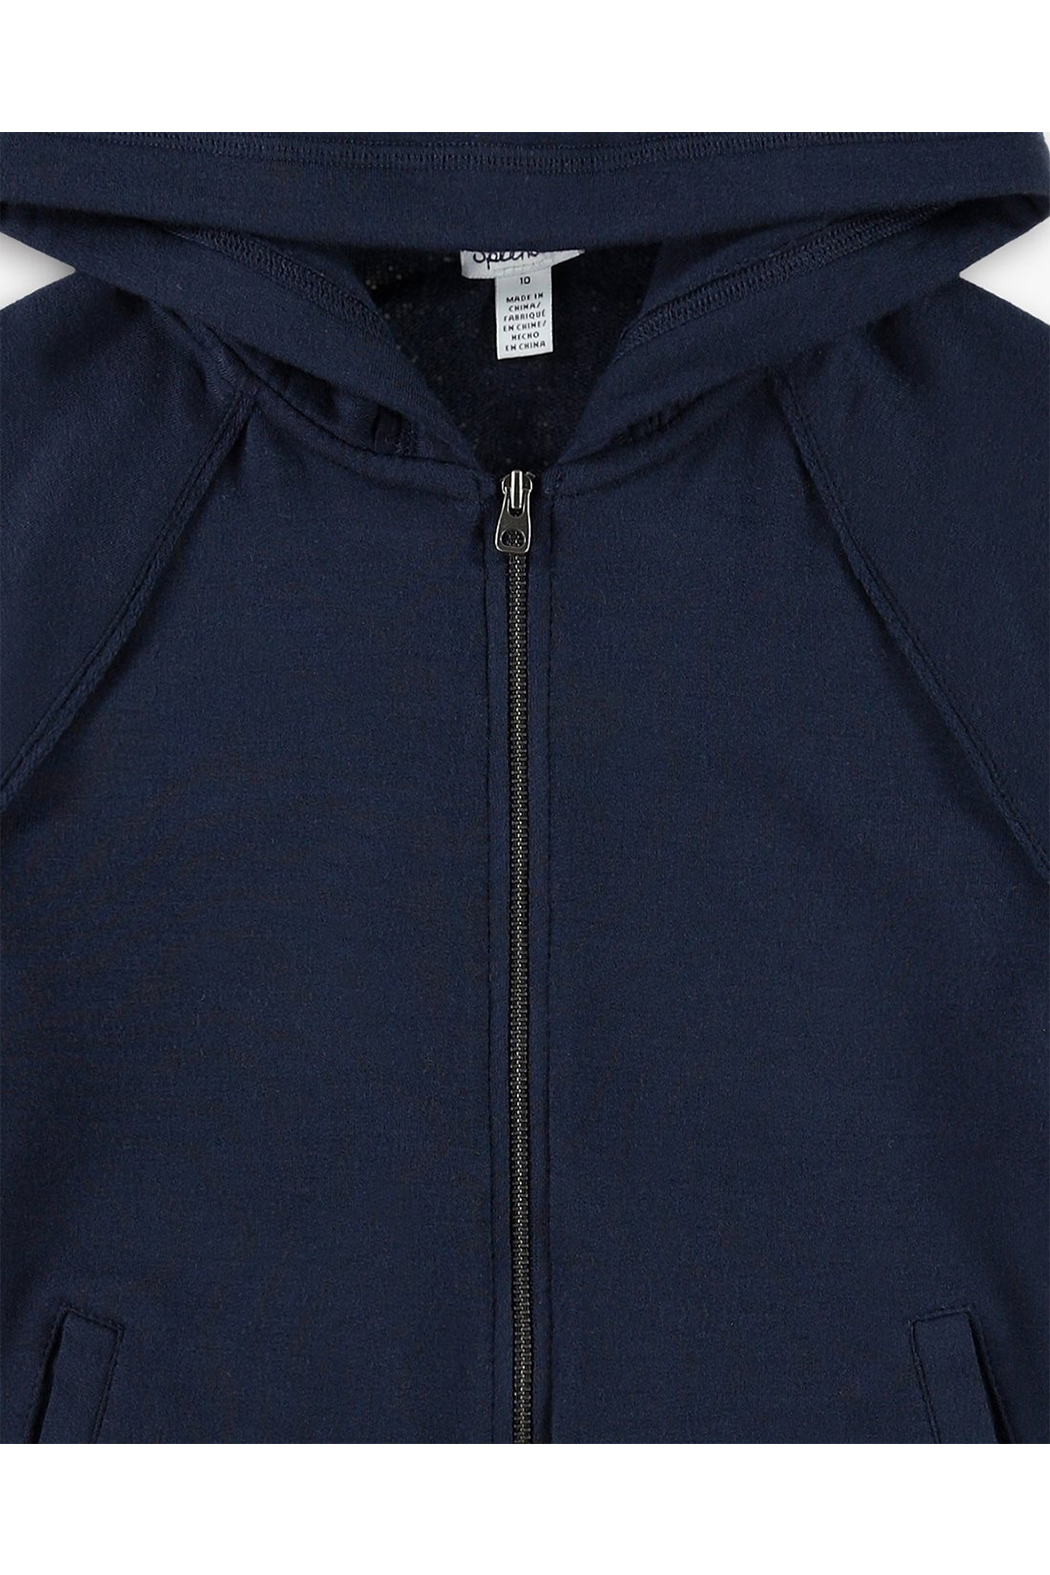 Splendid Super Soft French Terry Hoodie - Side Cropped Image